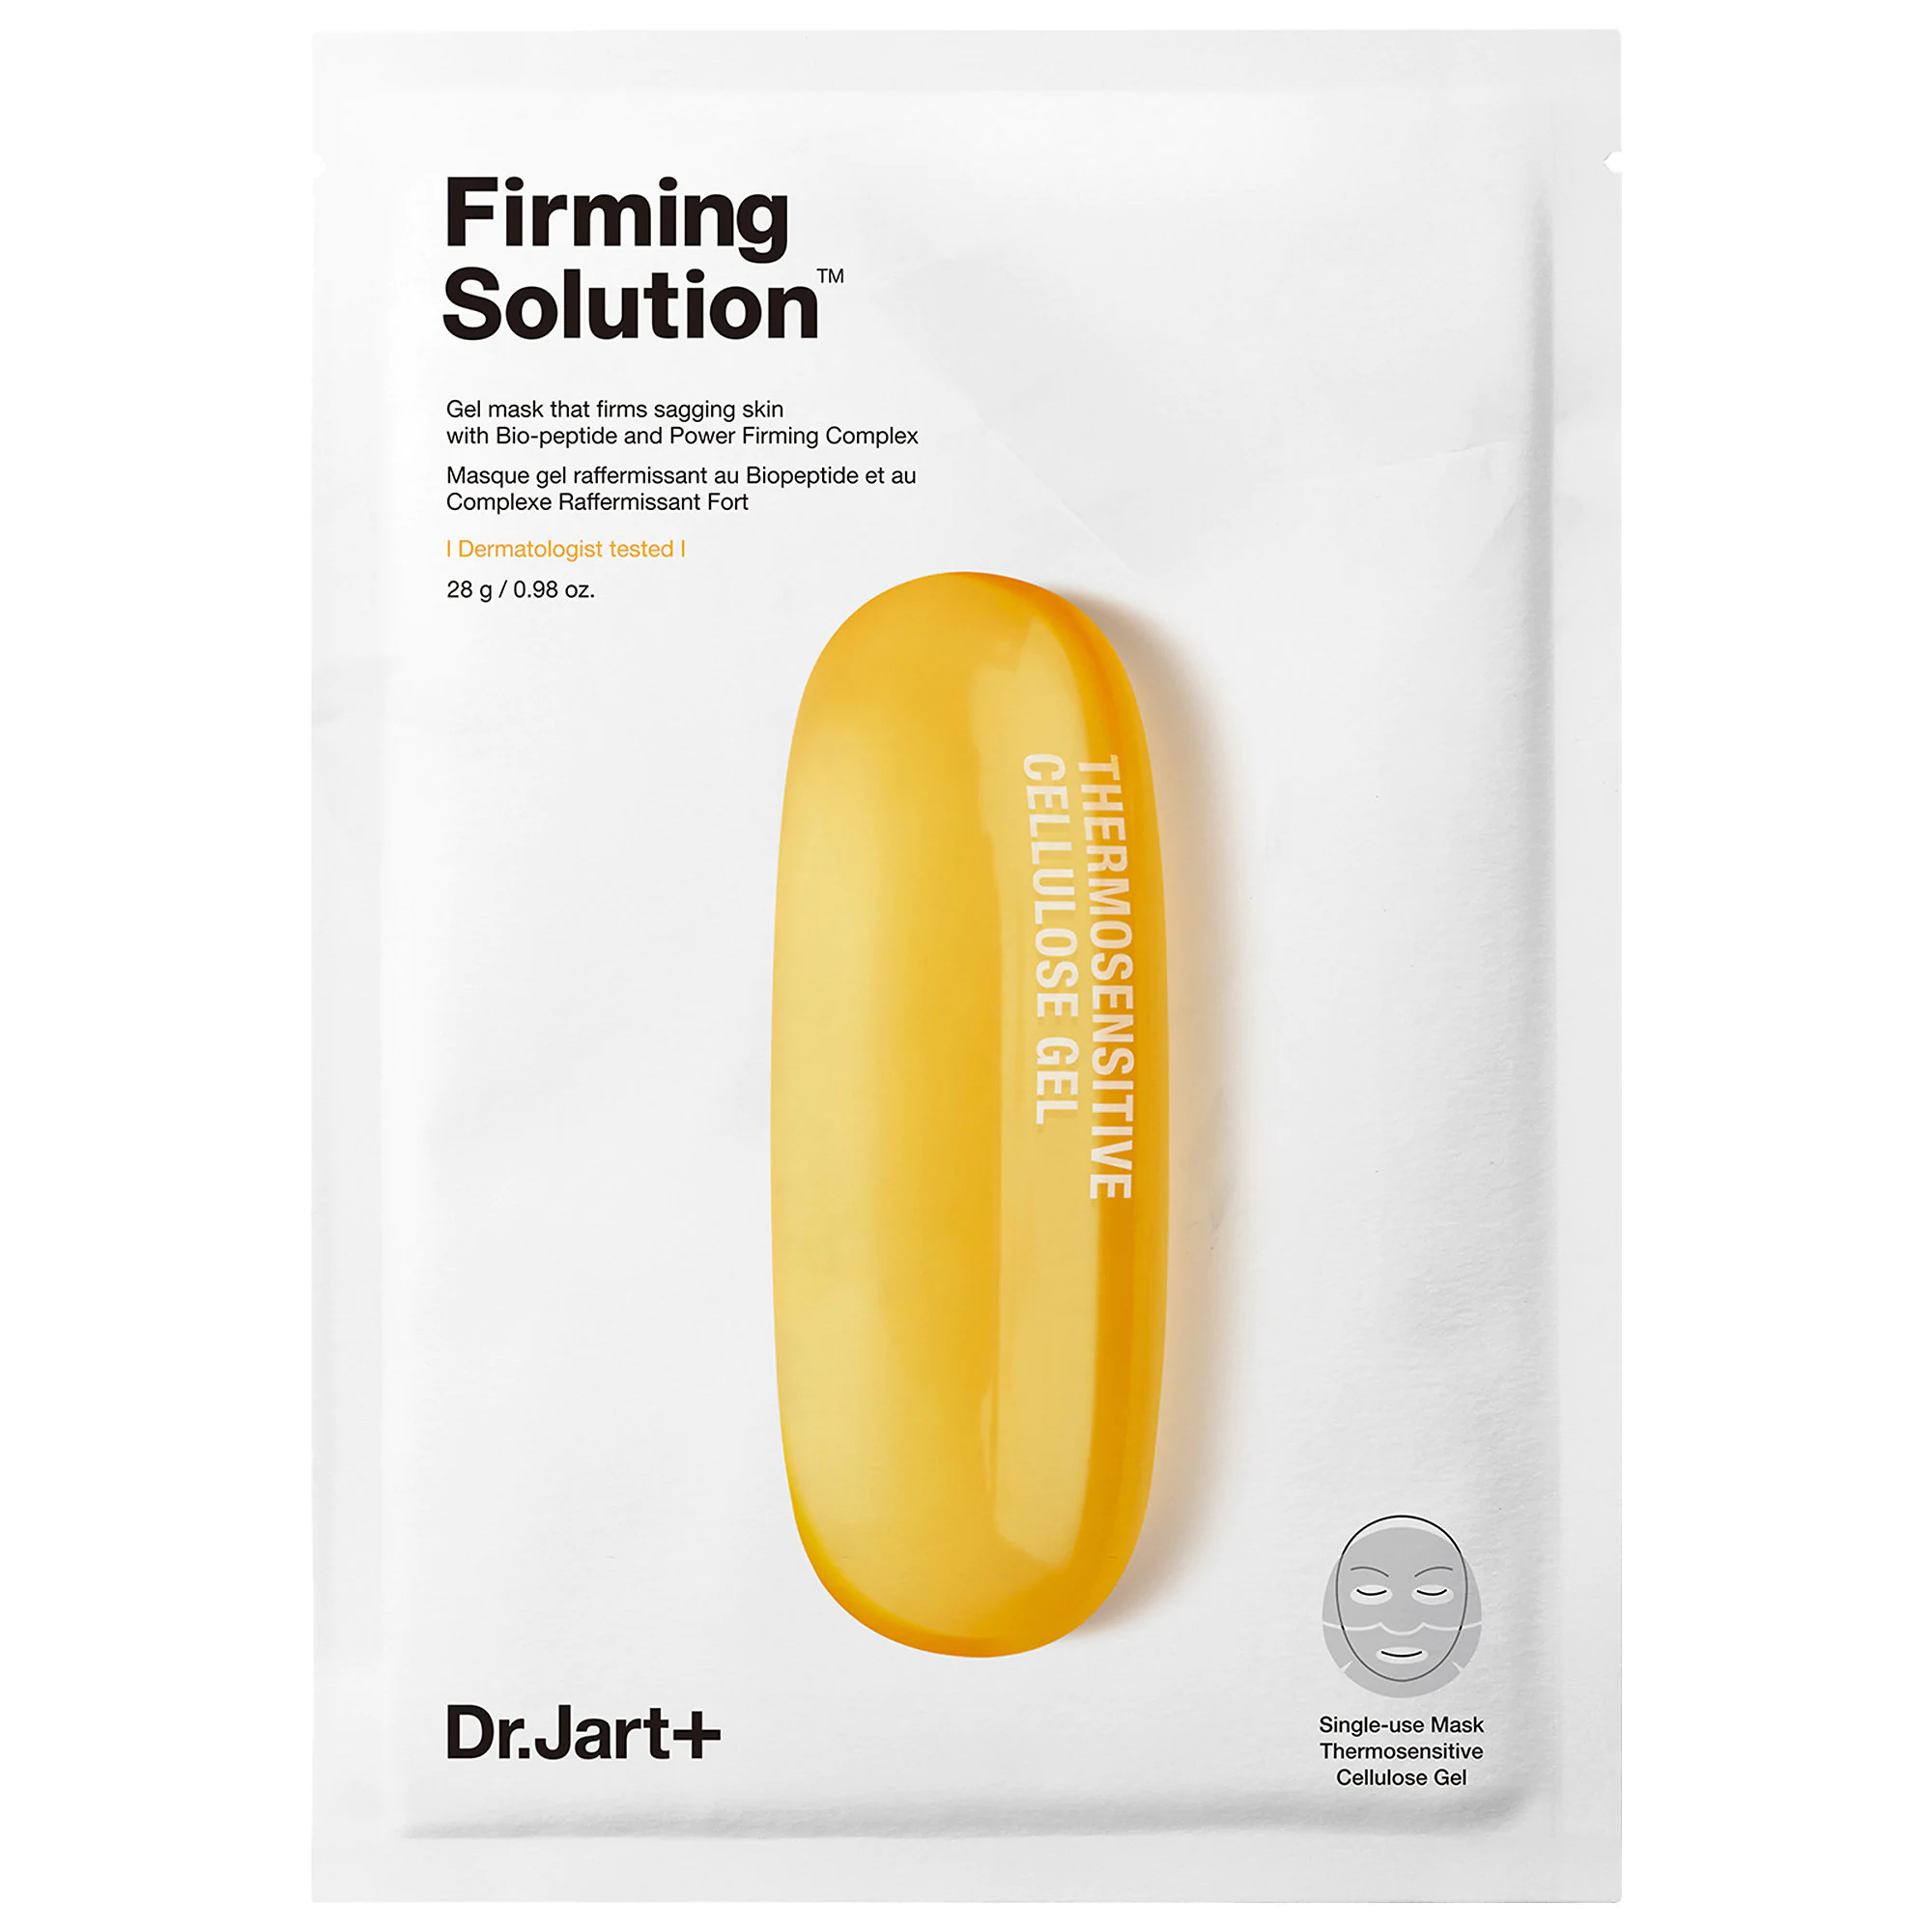 Dr. Jart+ Dermask Intra Jet Firming Solution™